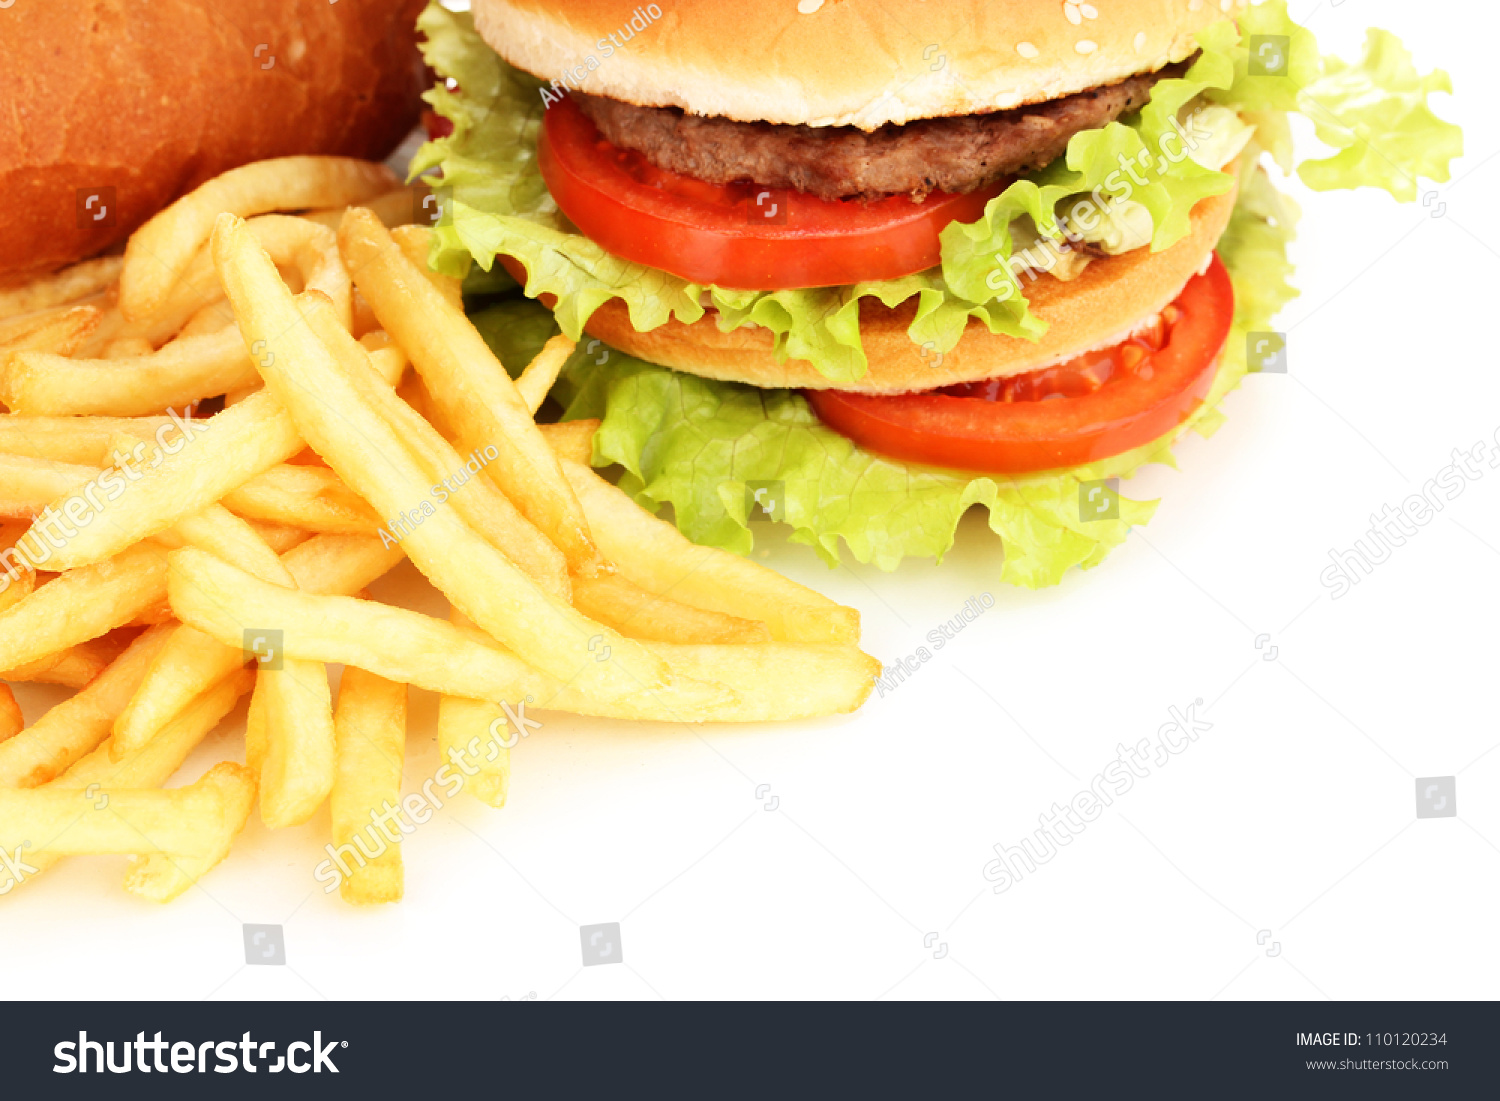 argumentative essay on fast food restaurants  argumentative essay on fast food restaurants